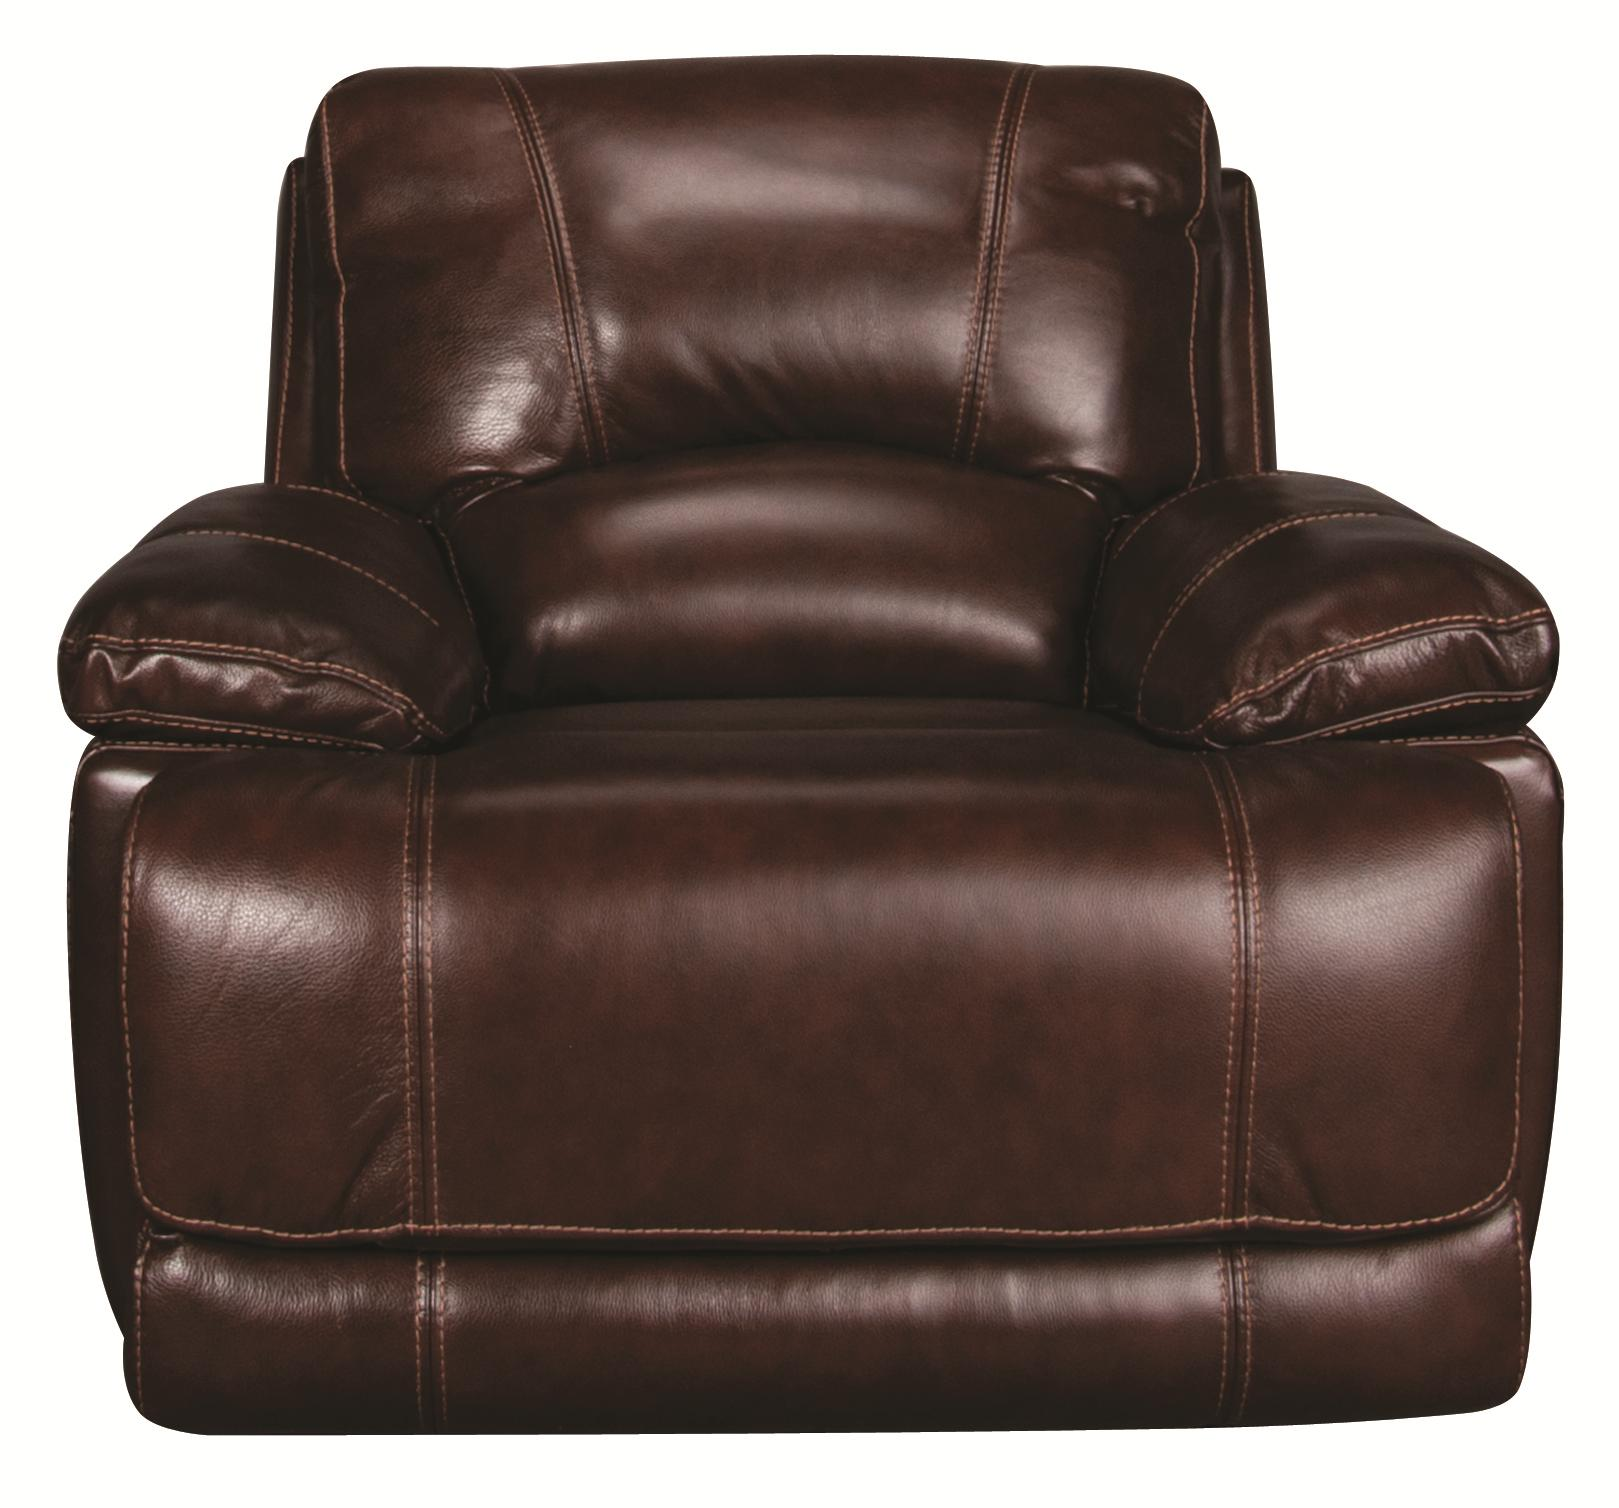 Cindy Crawford Home Sawyer Sawyer Power Leather-Match* Recliner - Item Number: 149833598